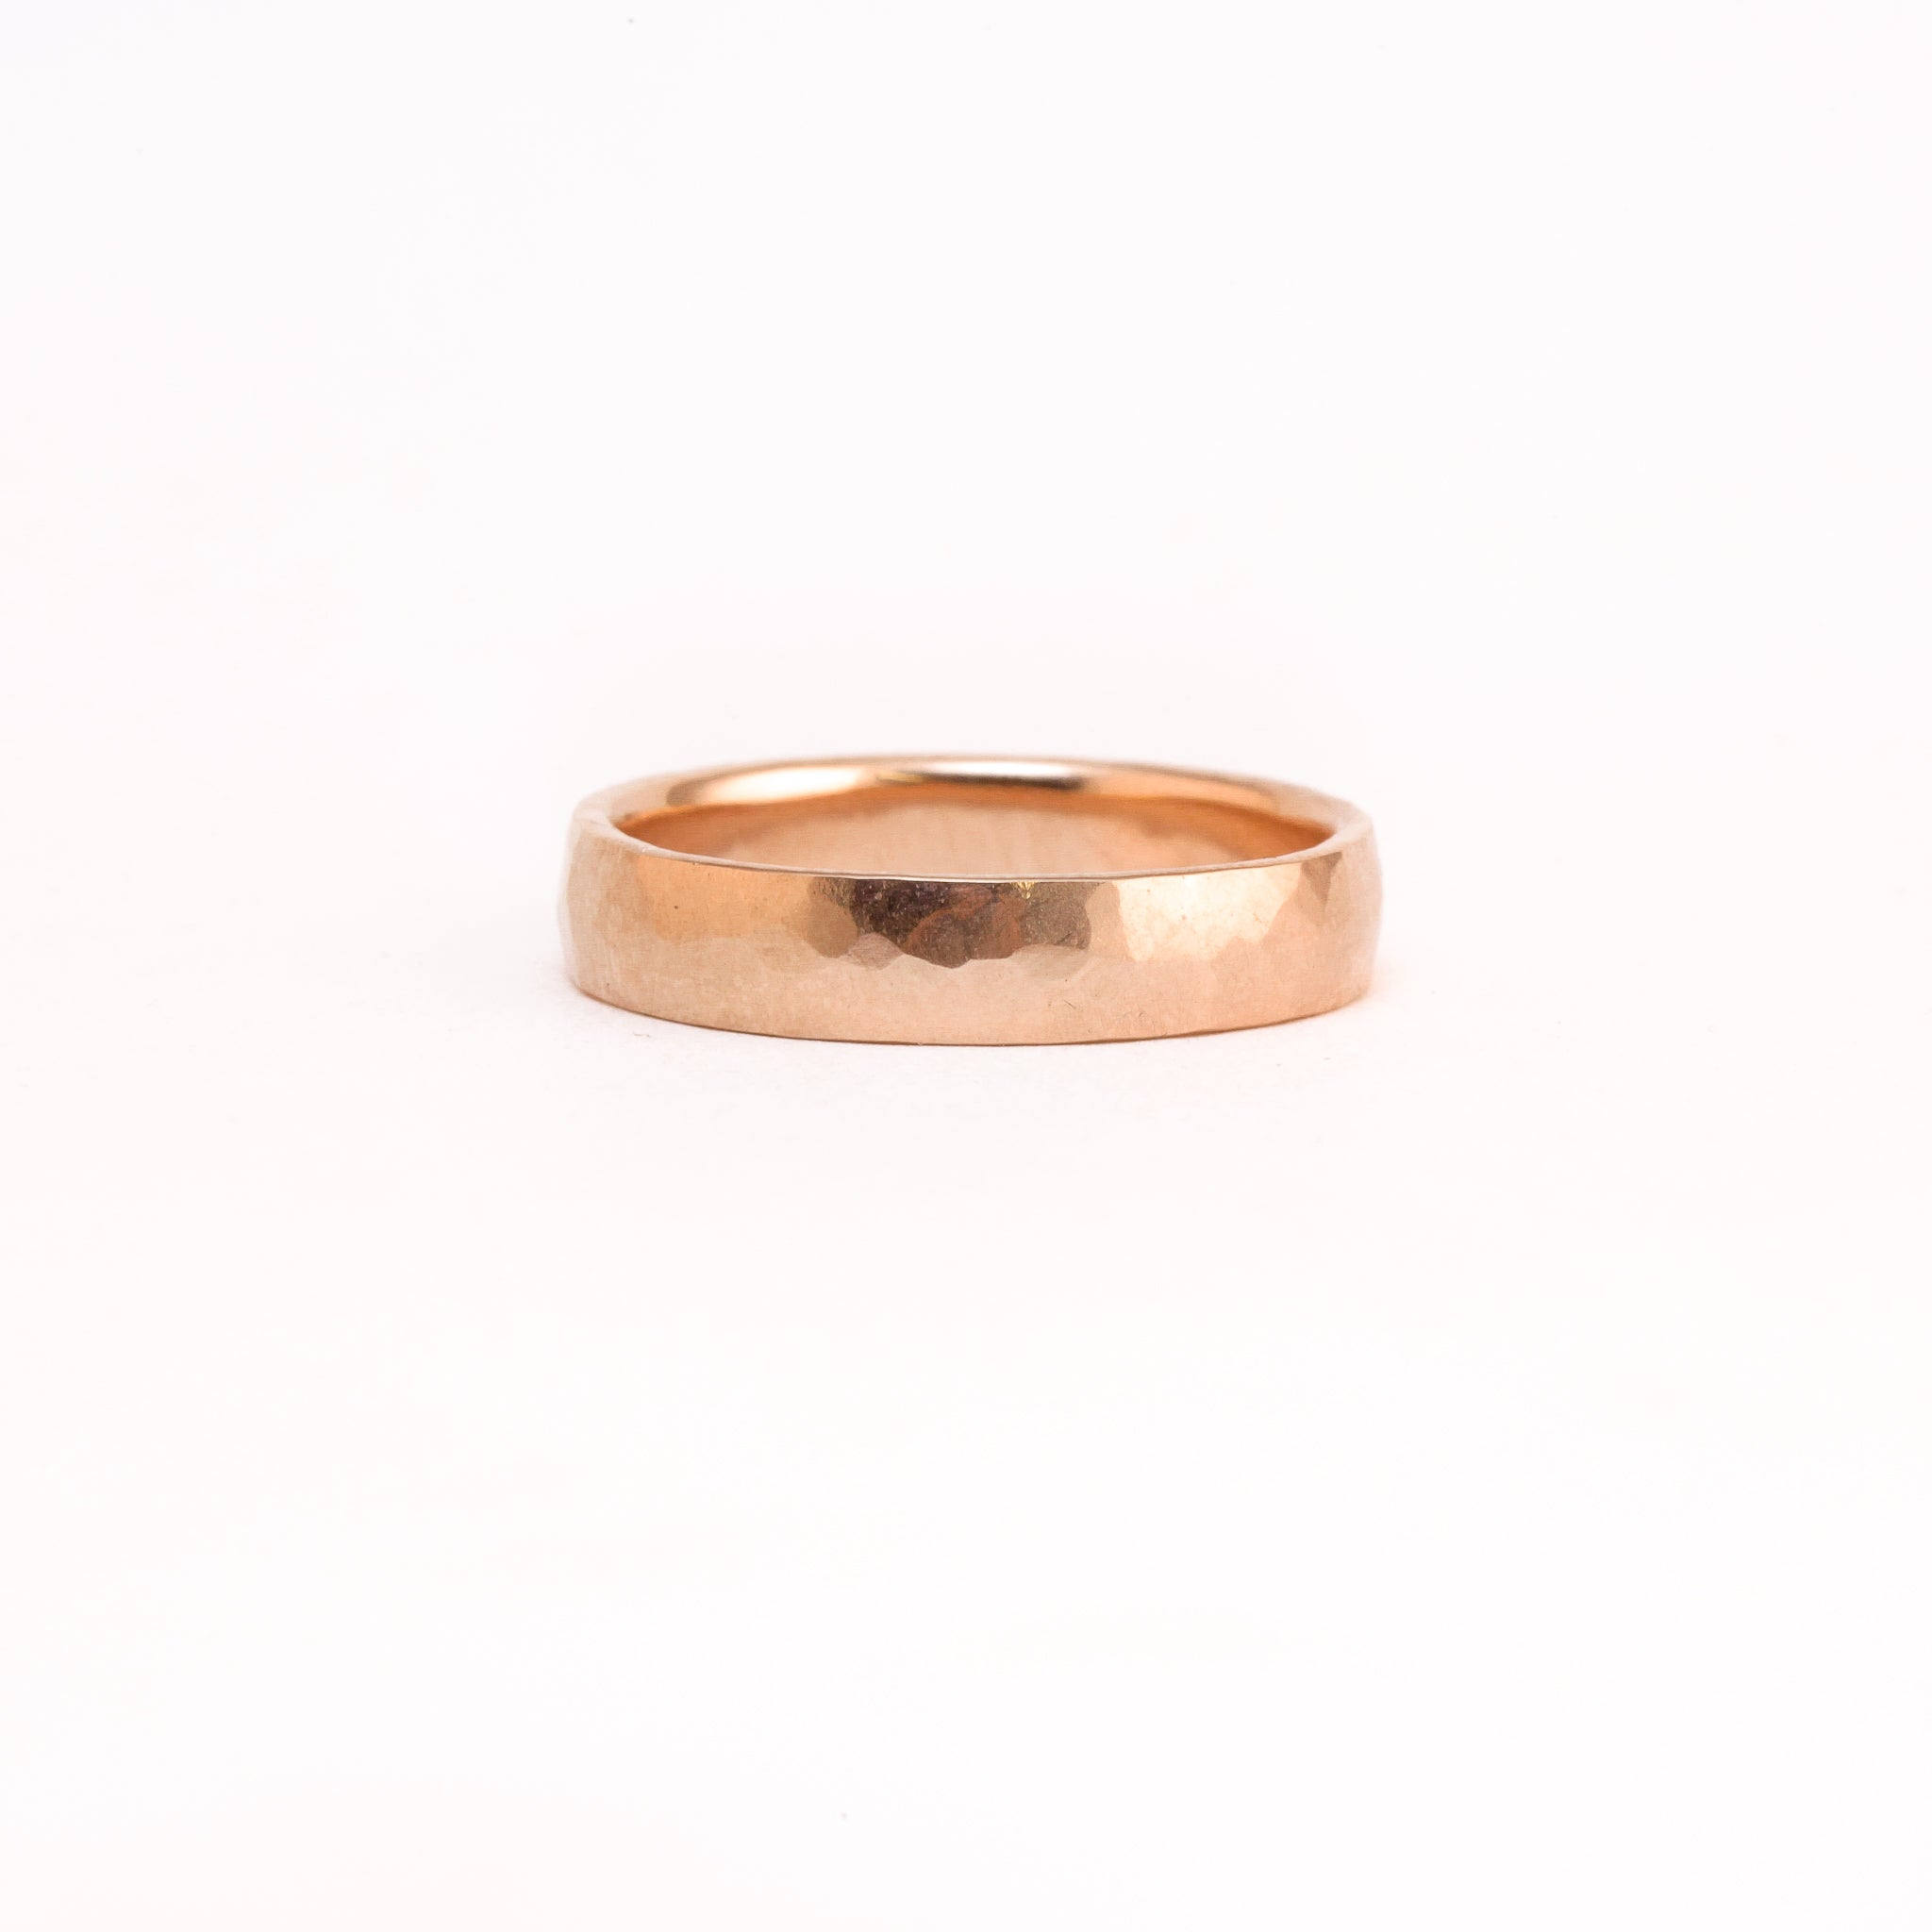 Wide 18ct rose gold hammered finished ring - made in Melbourne.